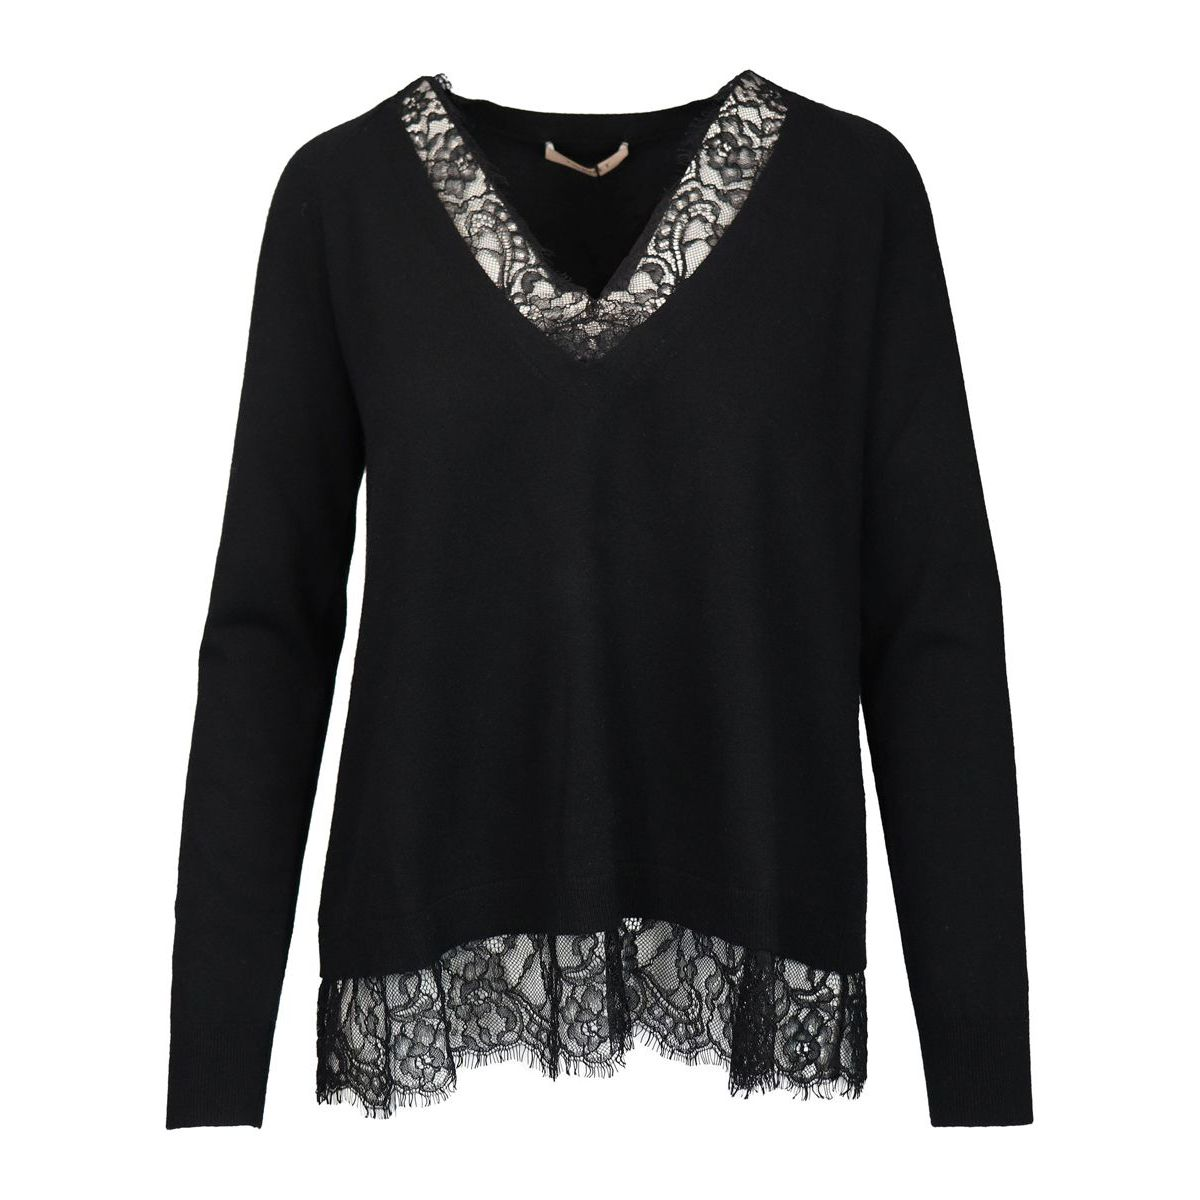 Viscose blend sweater with v-neck and scalloped lace trim Black Twin-Set